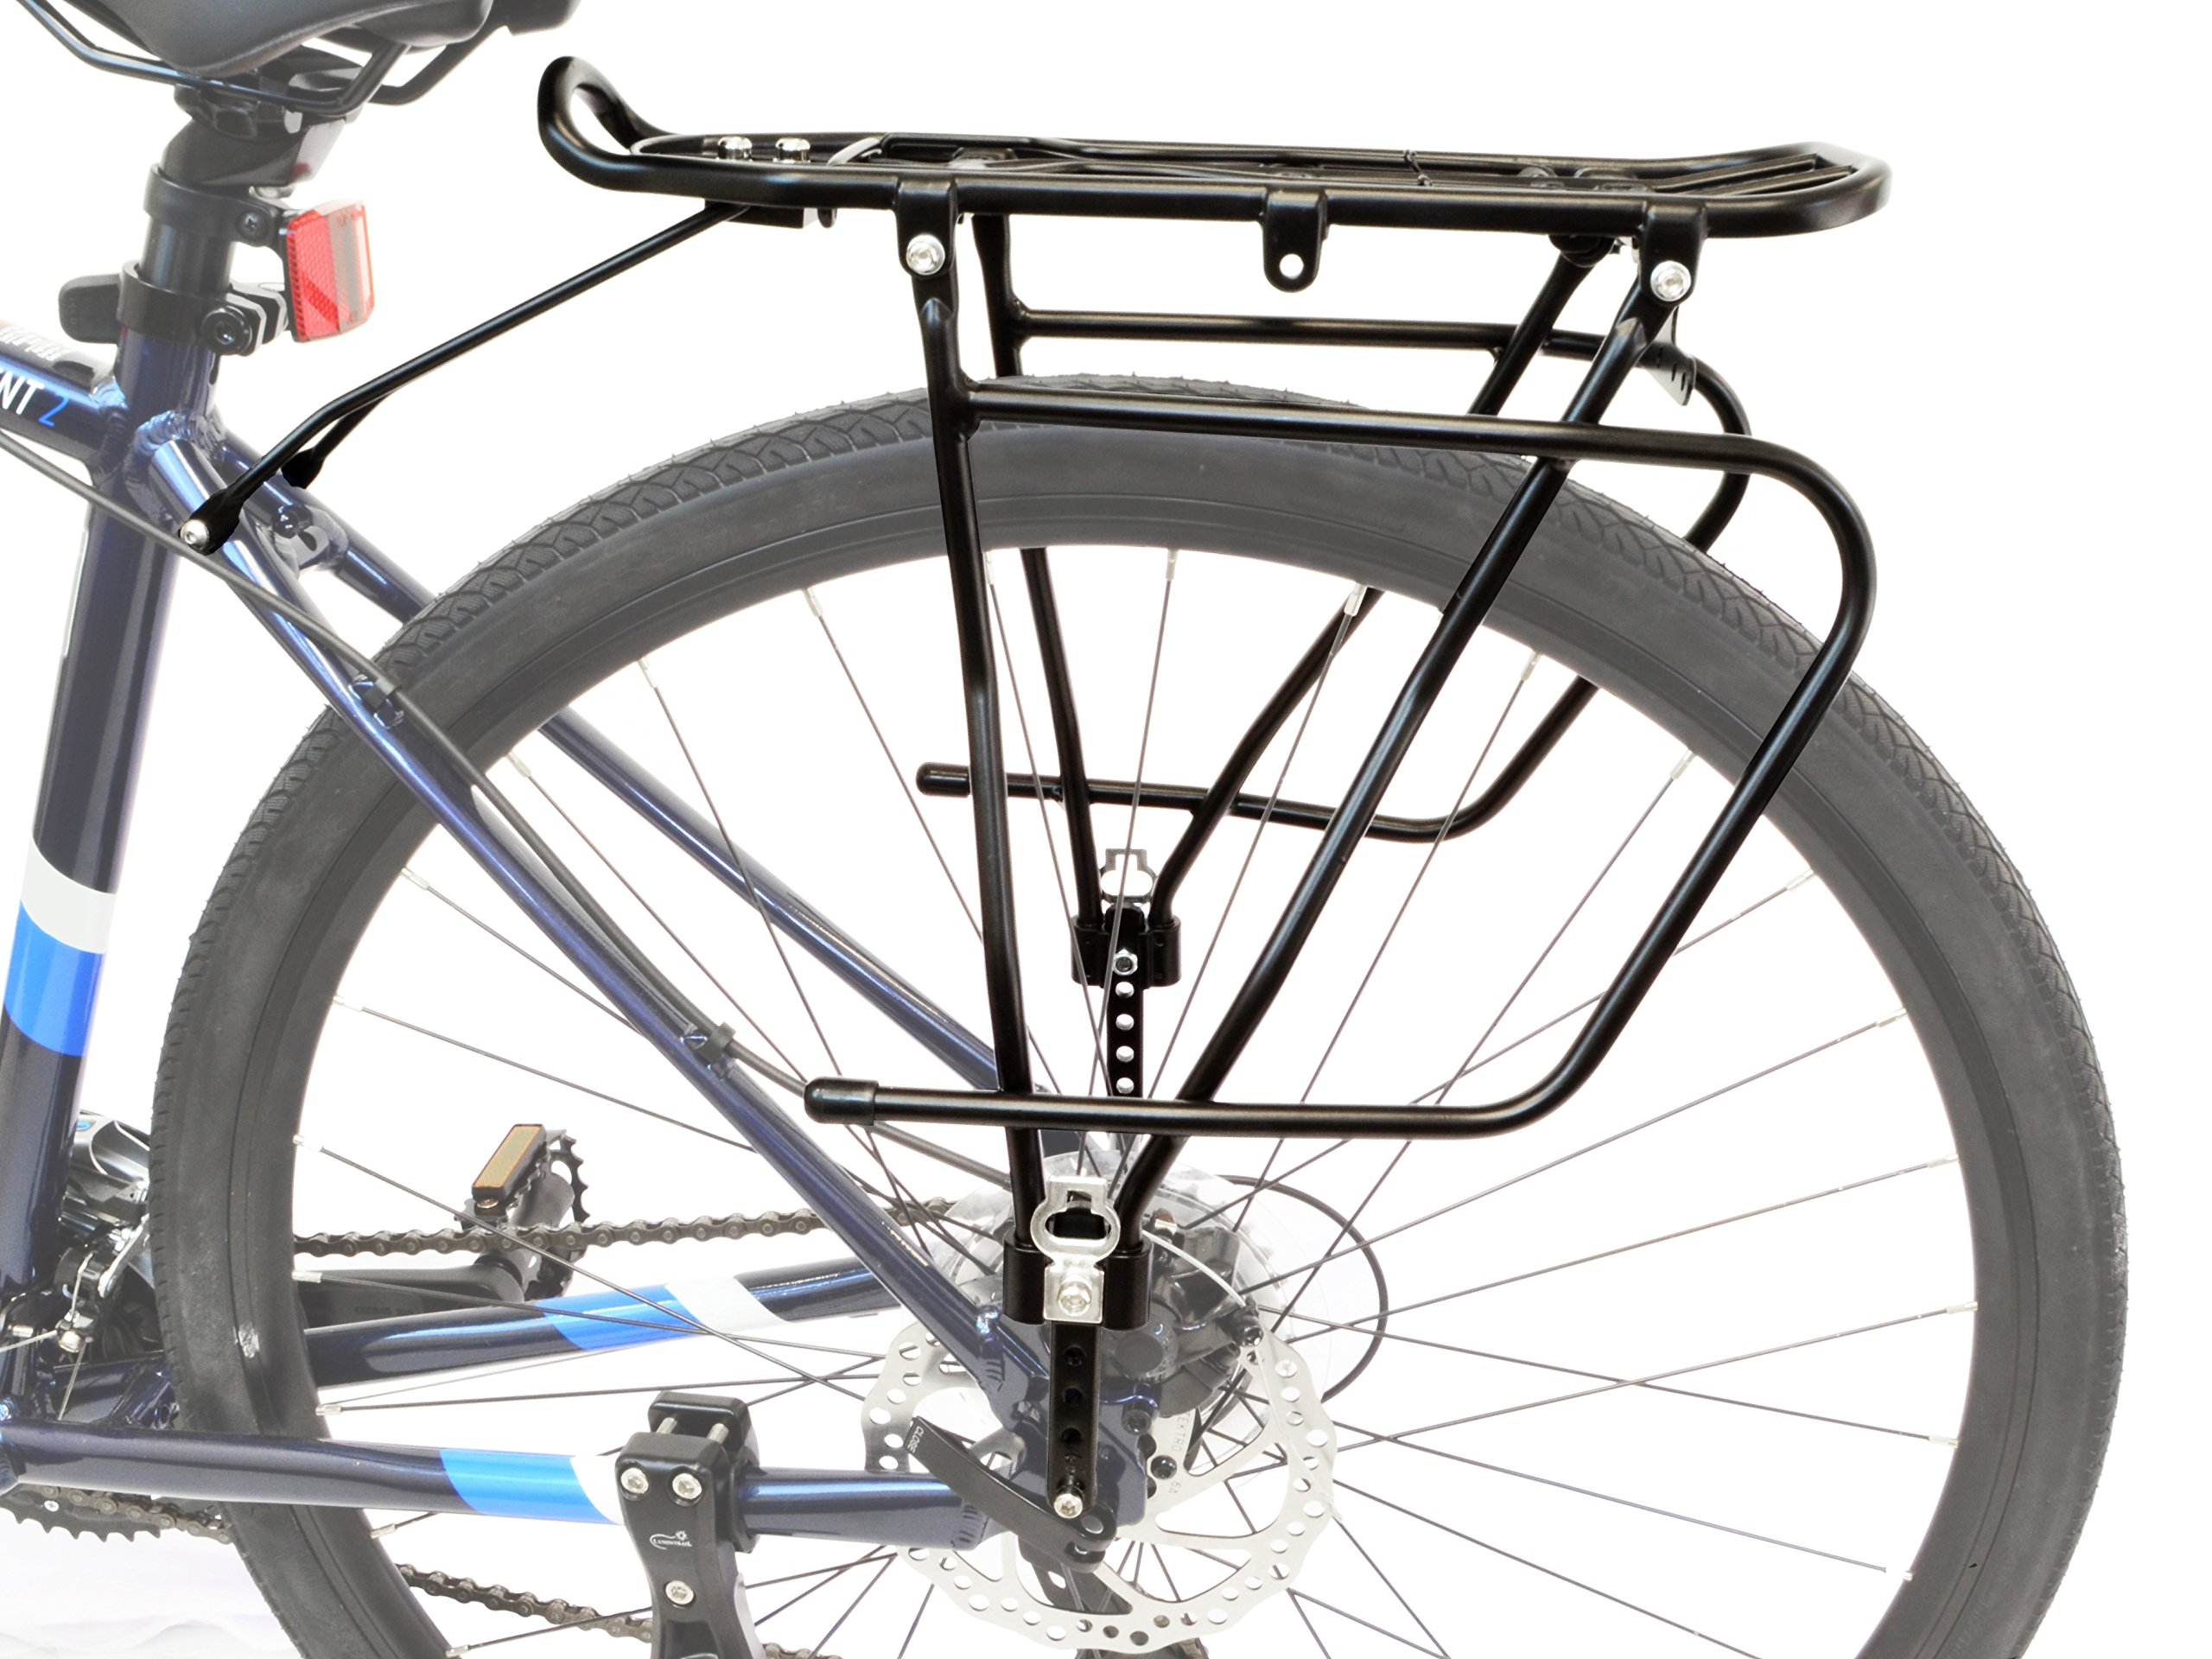 Lumintrail Bicycle Rear Frame Mounted Cargo Rack for Disc Bikes Height Adjustable Commuter Carrier by Lumintrail (Image #4)